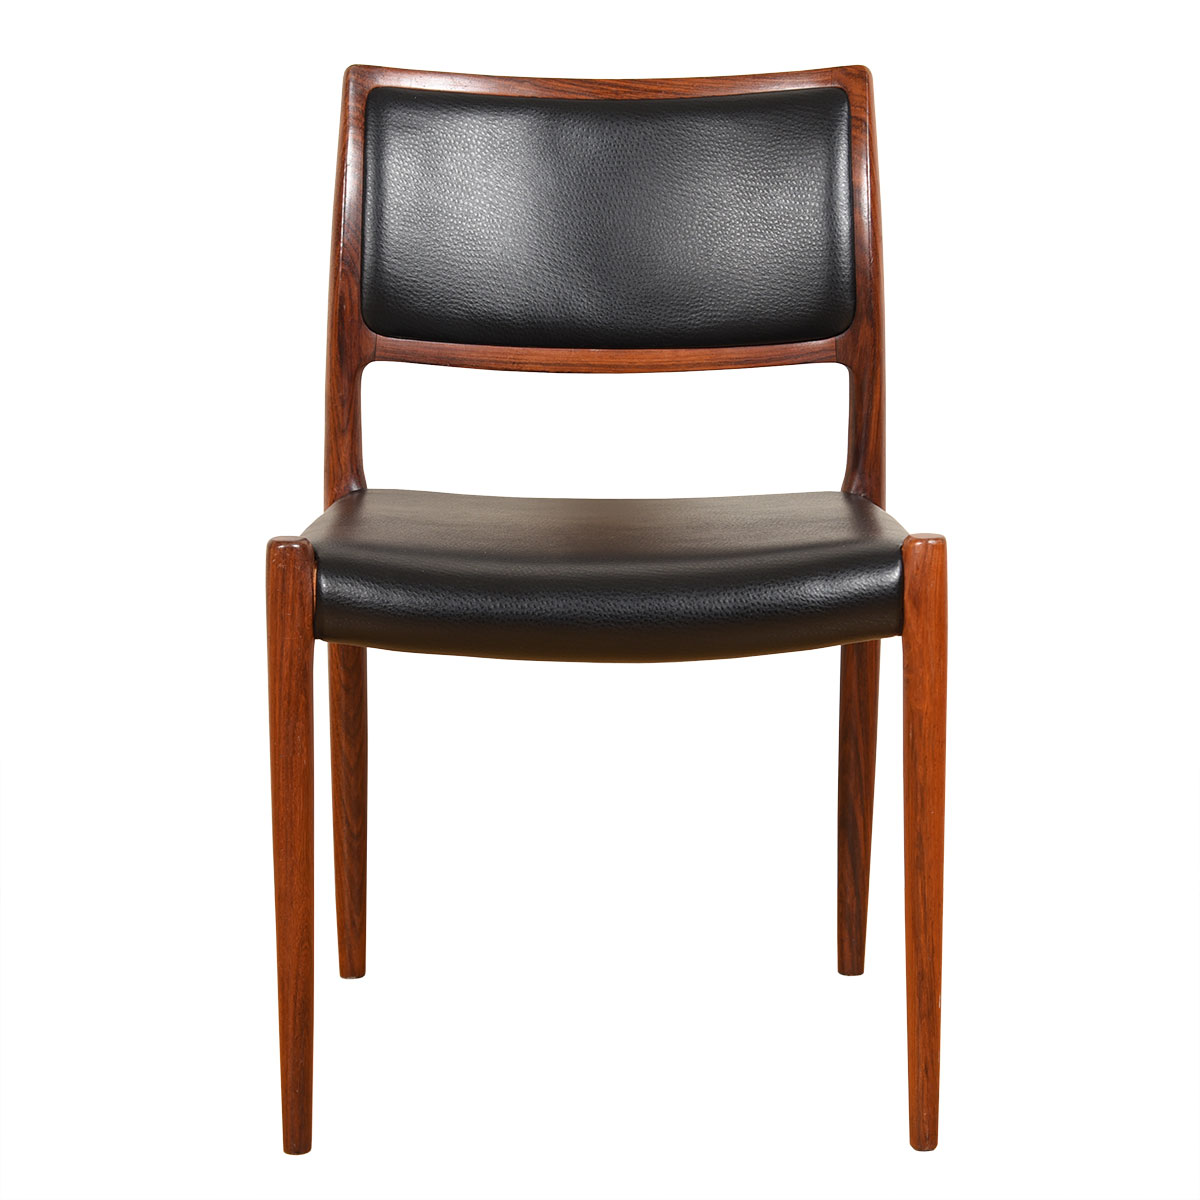 Newly Upholstered Danish Rosewood Niels Moller #80 Single Chair